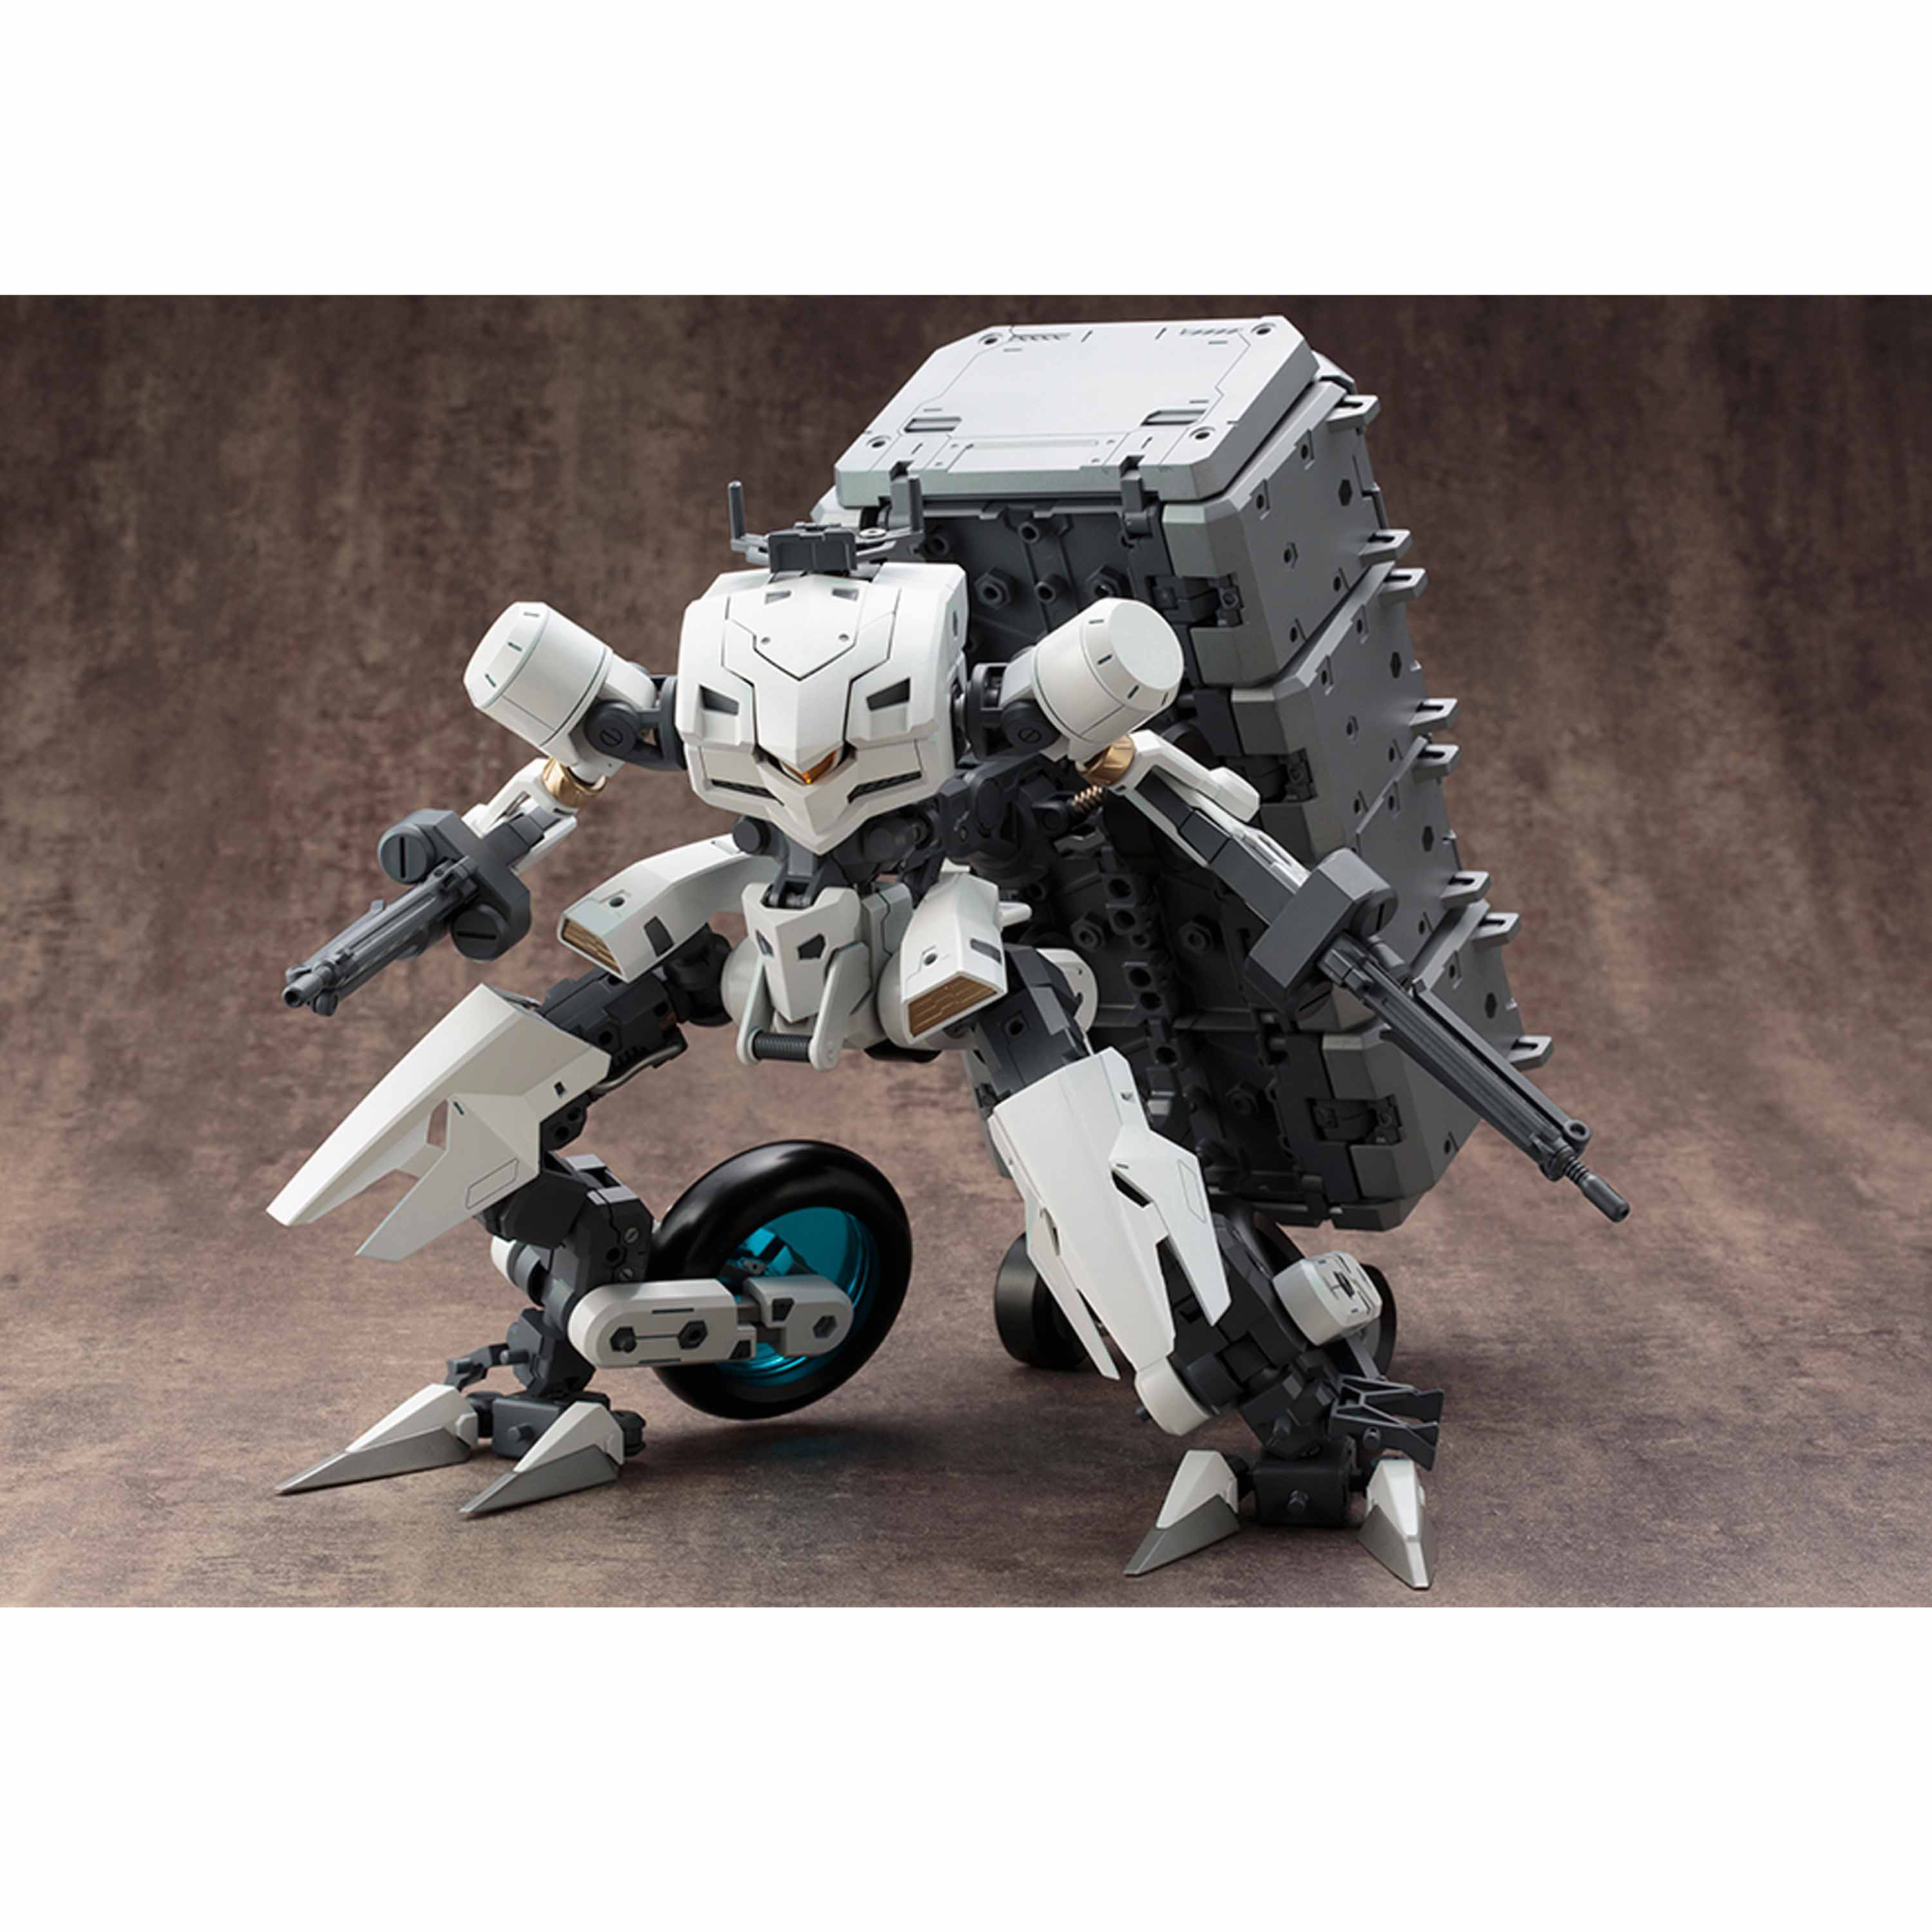 KOTOBUKIYA M.S.G Modeling Support Goods Gigantic Arms 04 Armored Breaker